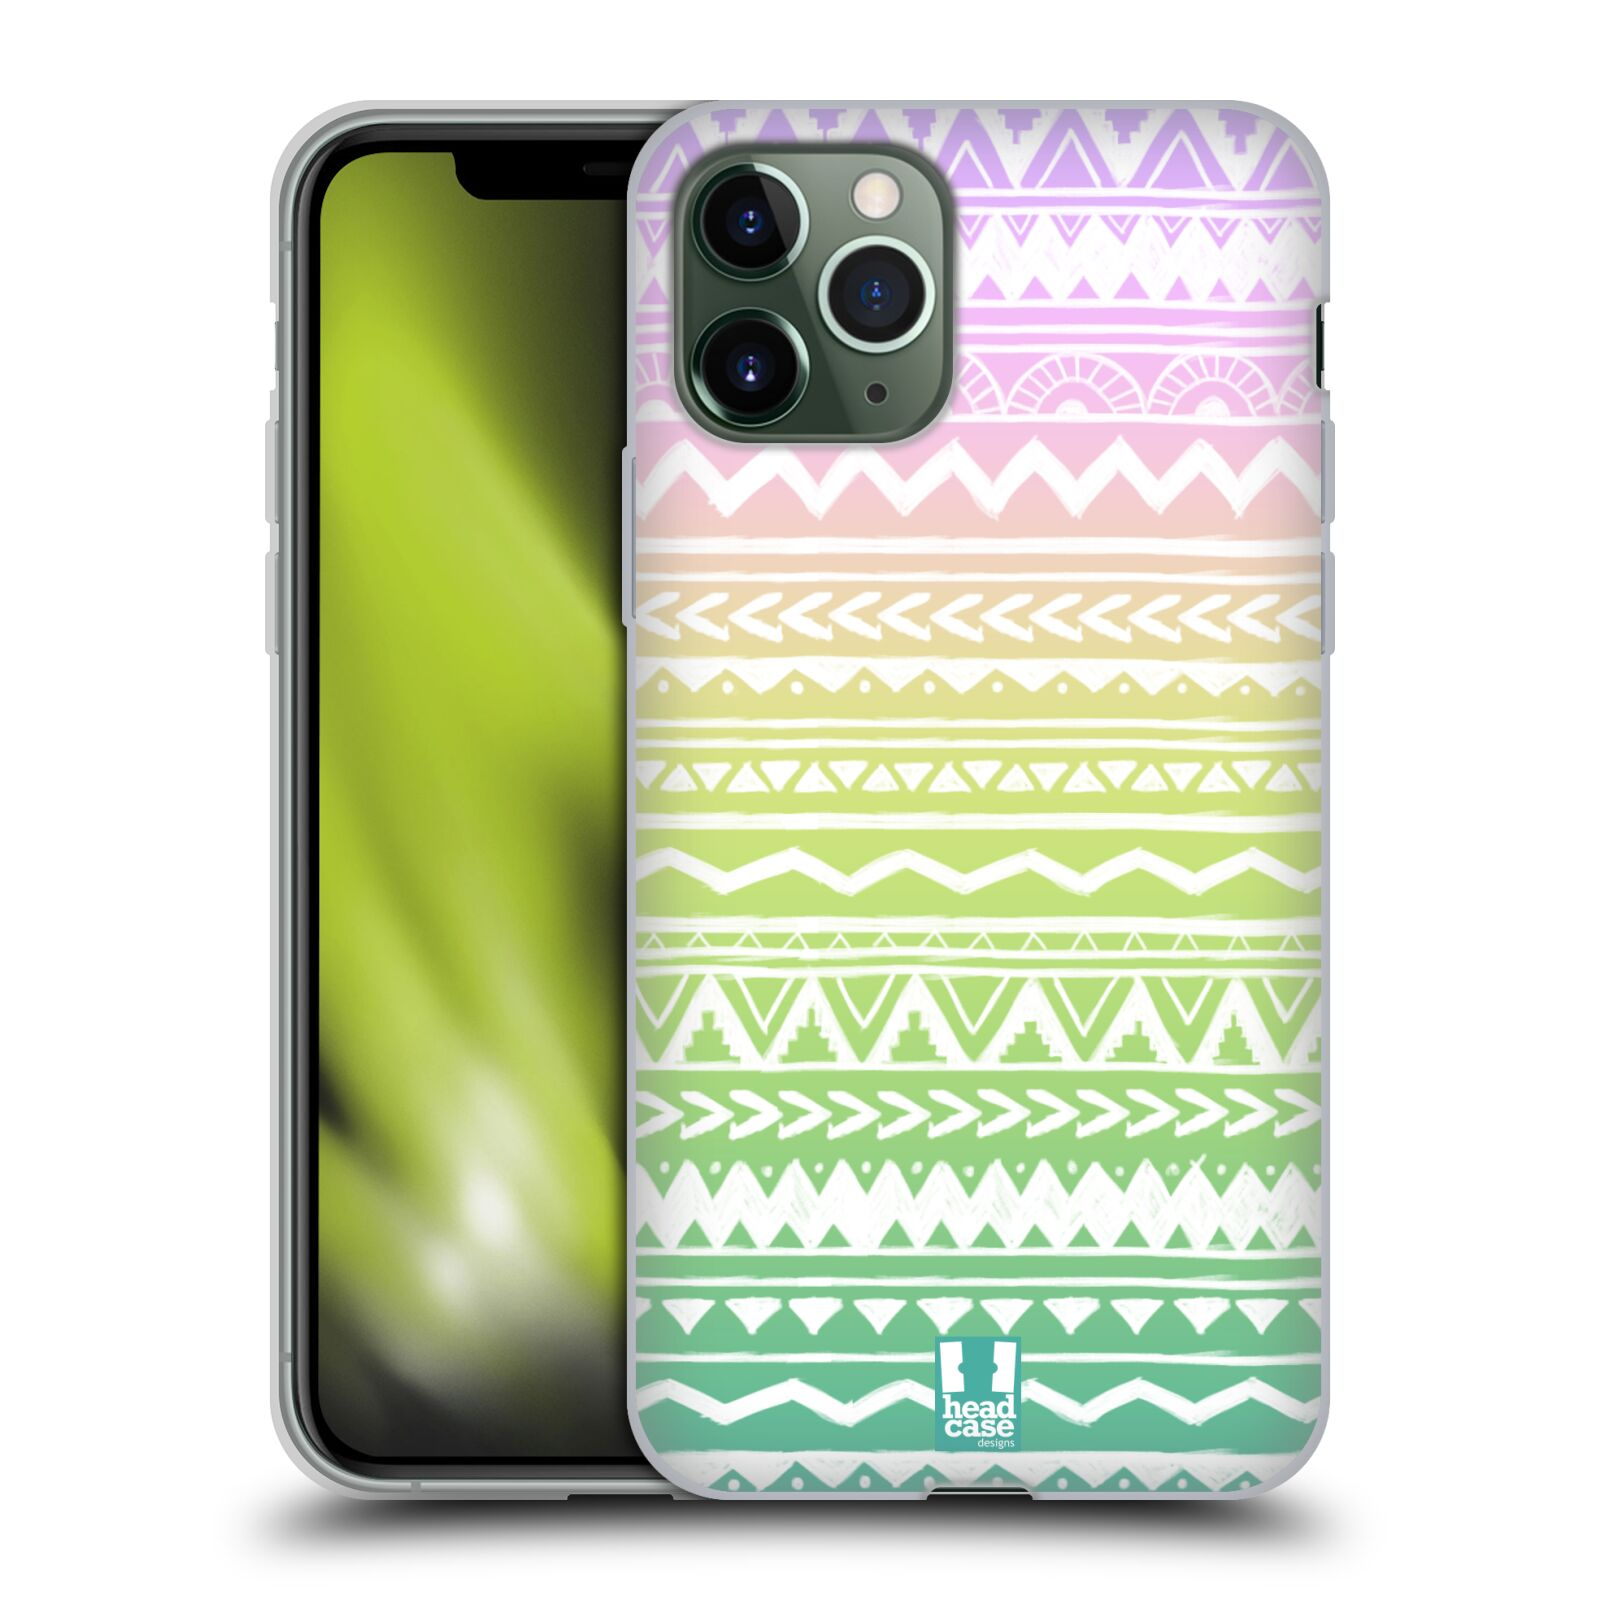 original krytu na iphone 6 plus - Silikonové pouzdro na mobil Apple iPhone 11 Pro - Head Case - MIX AZTEC DRAWN